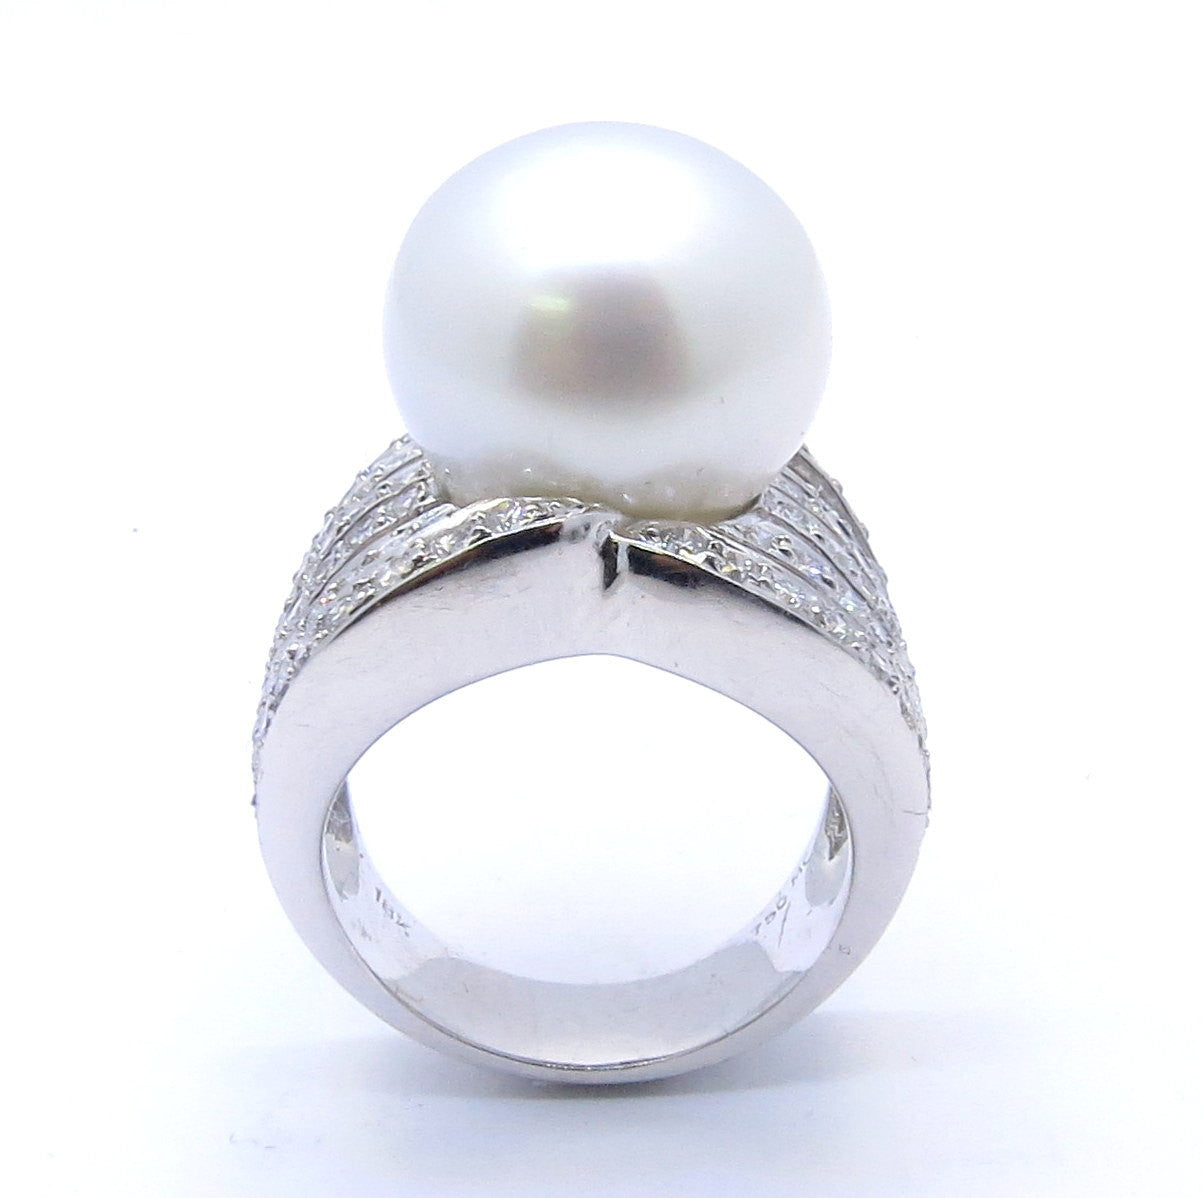 South Sea Pearl And Diamonds Engagement Ring, Cocktail Ring